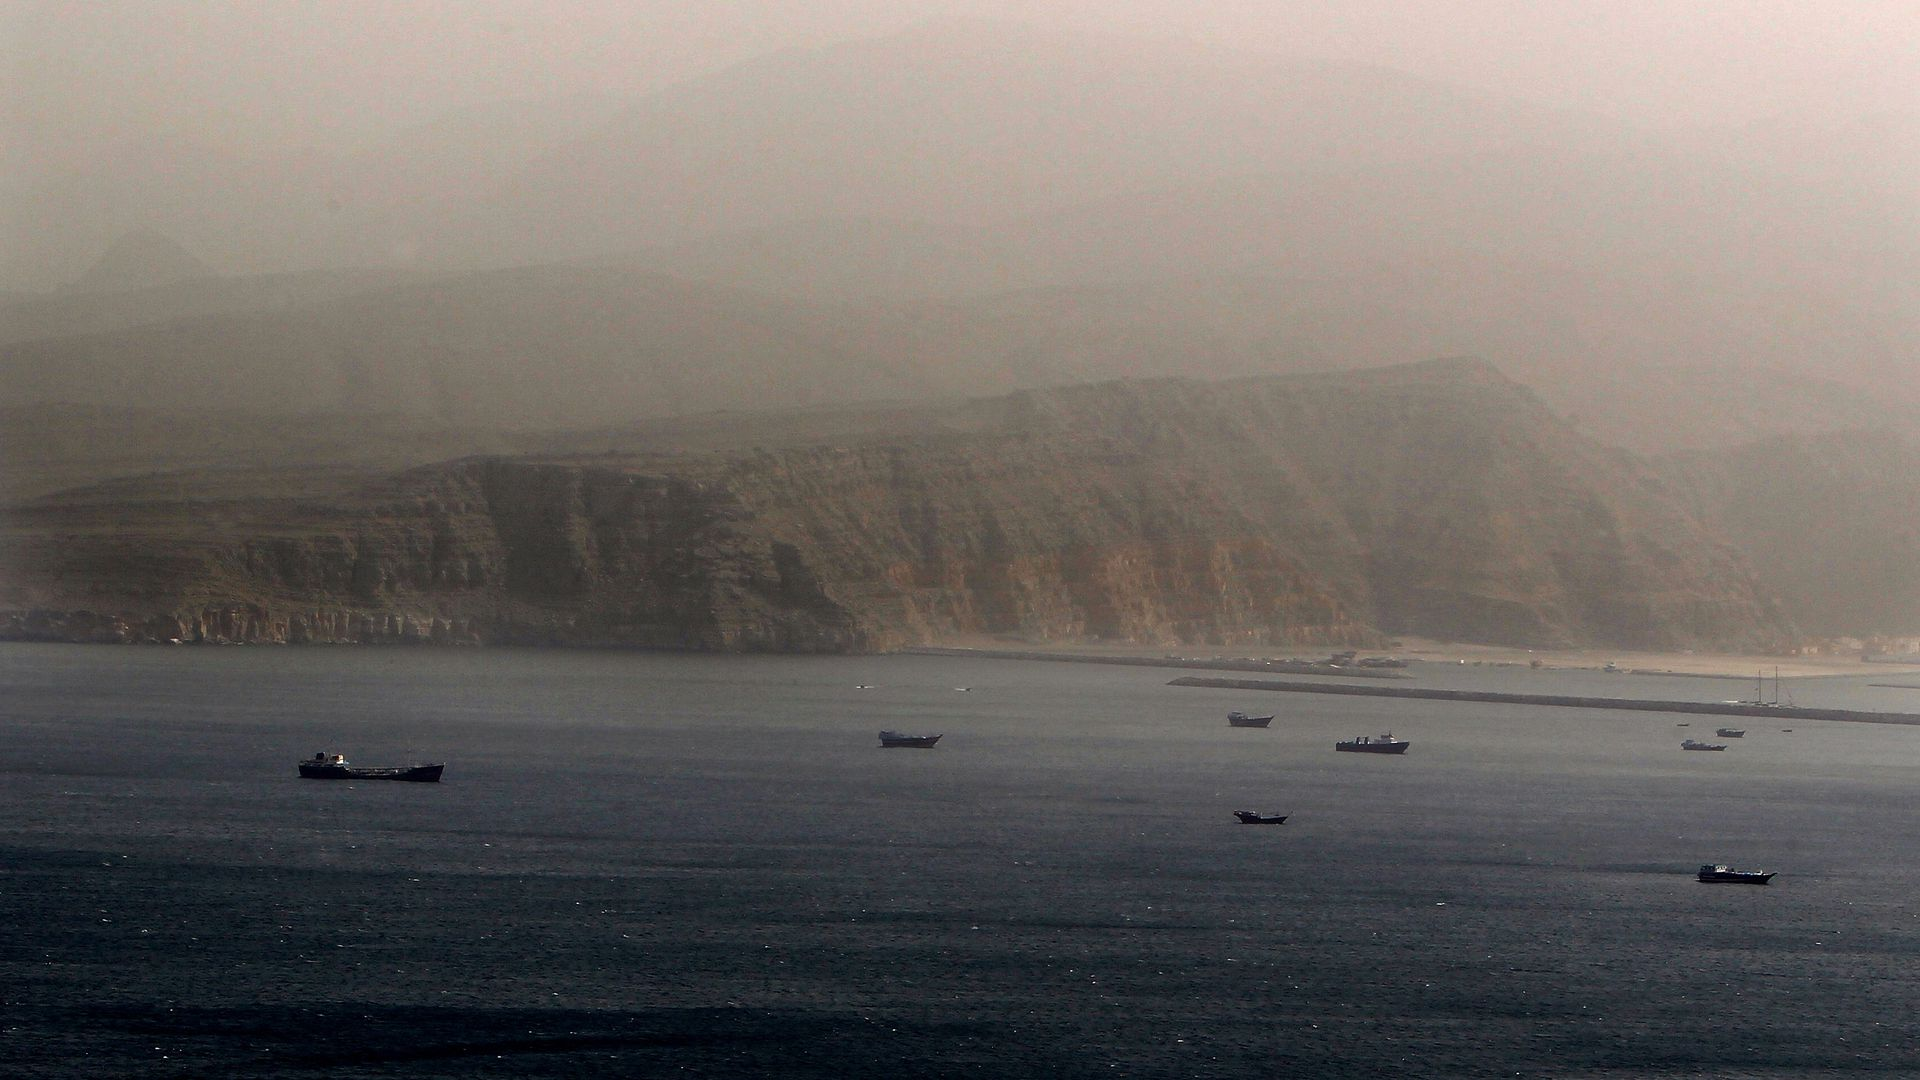 Ships in the strait of Hormuz